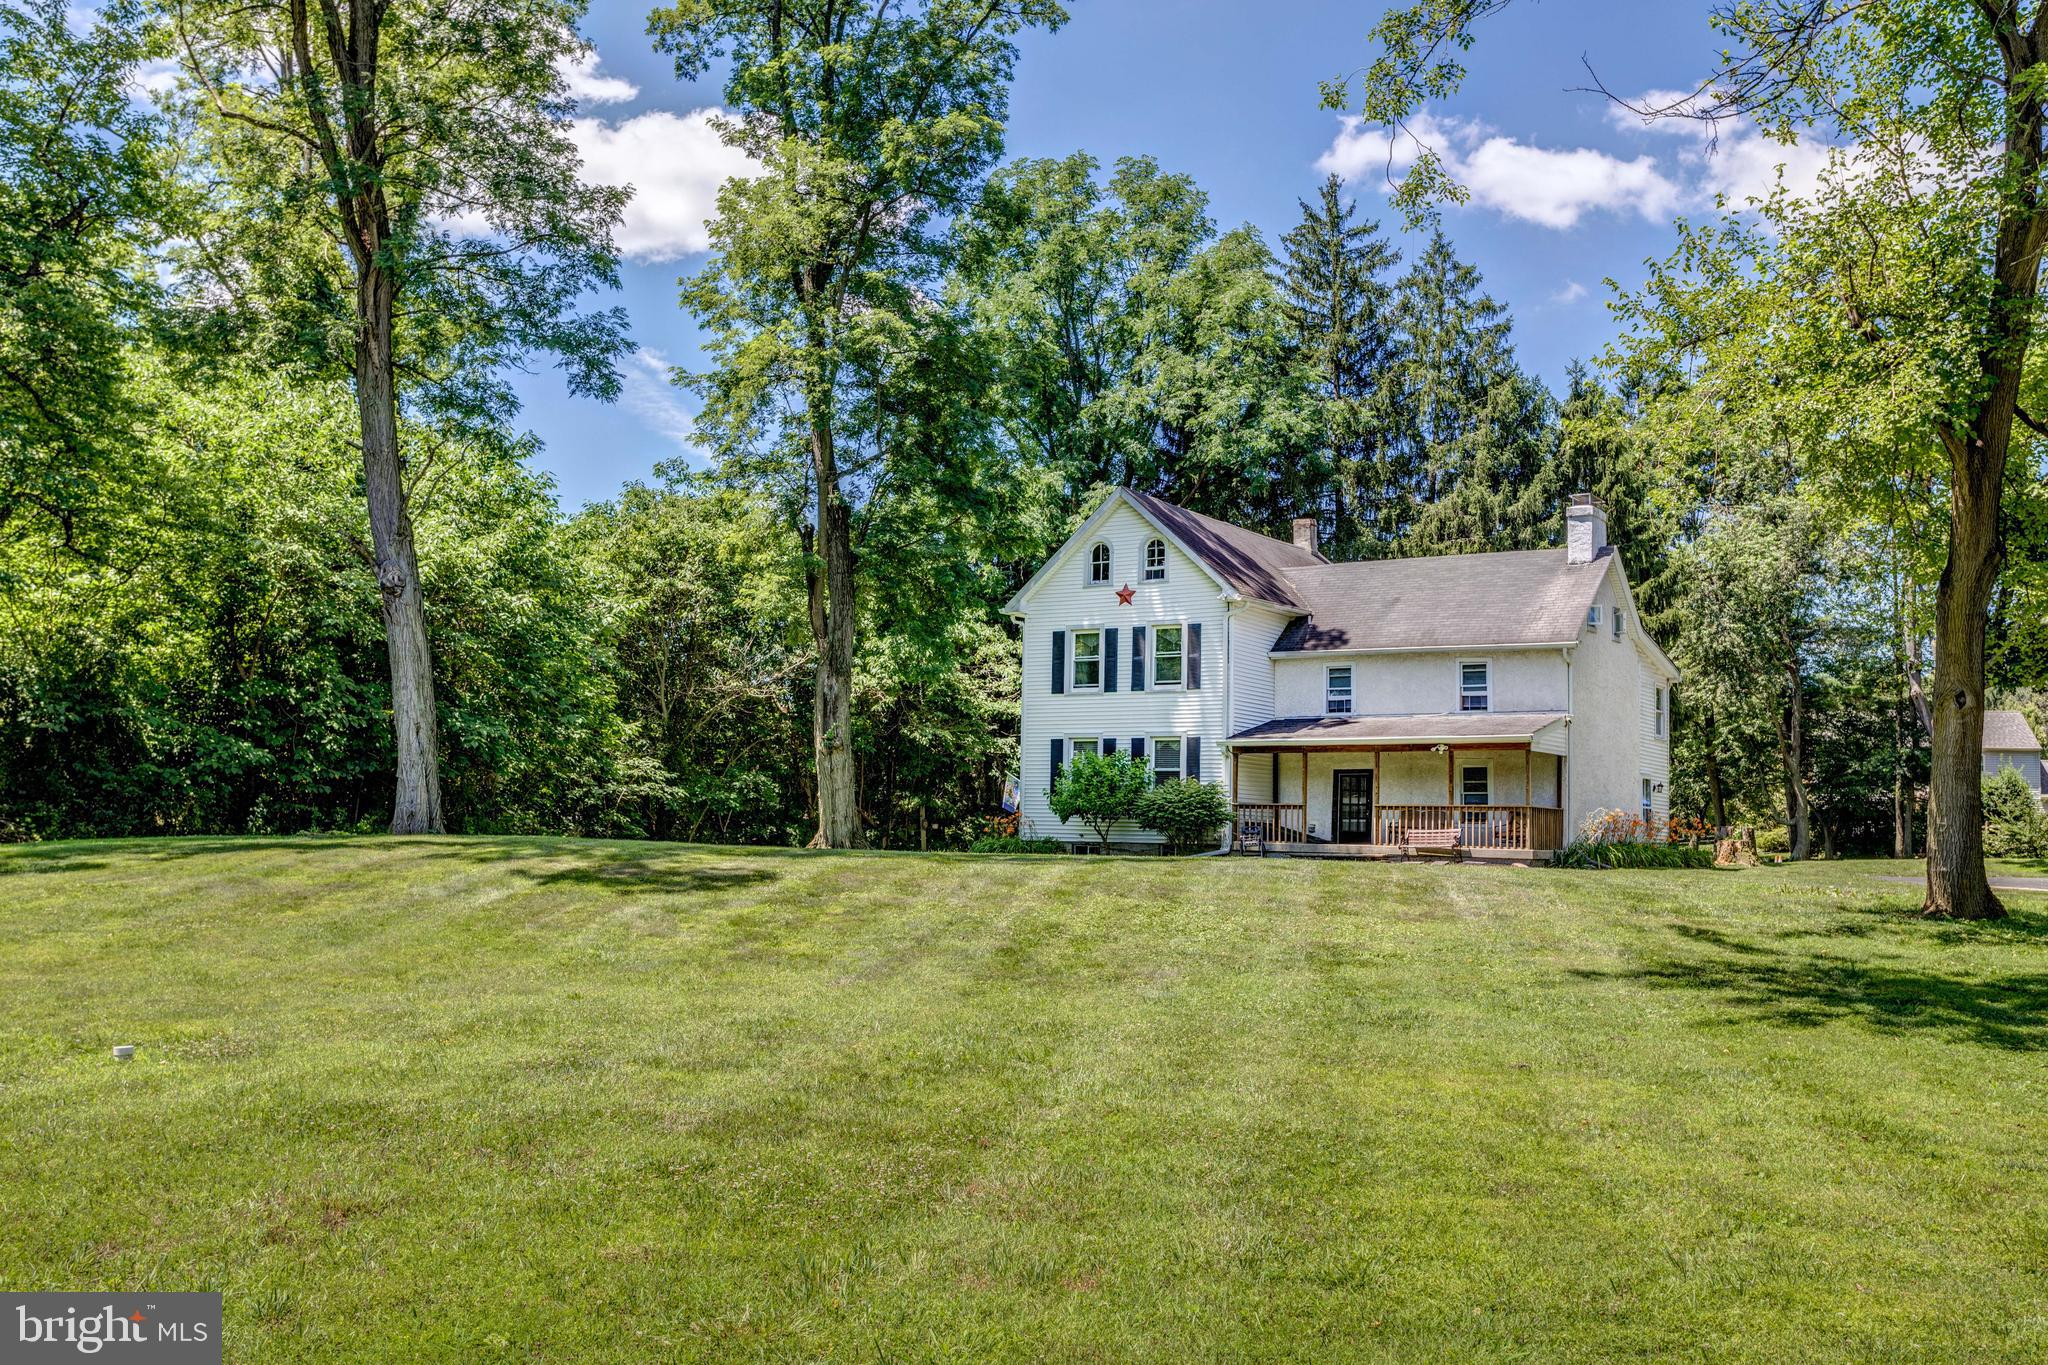 30-32 VERNON LANE, GARNET VALLEY, PA 19061